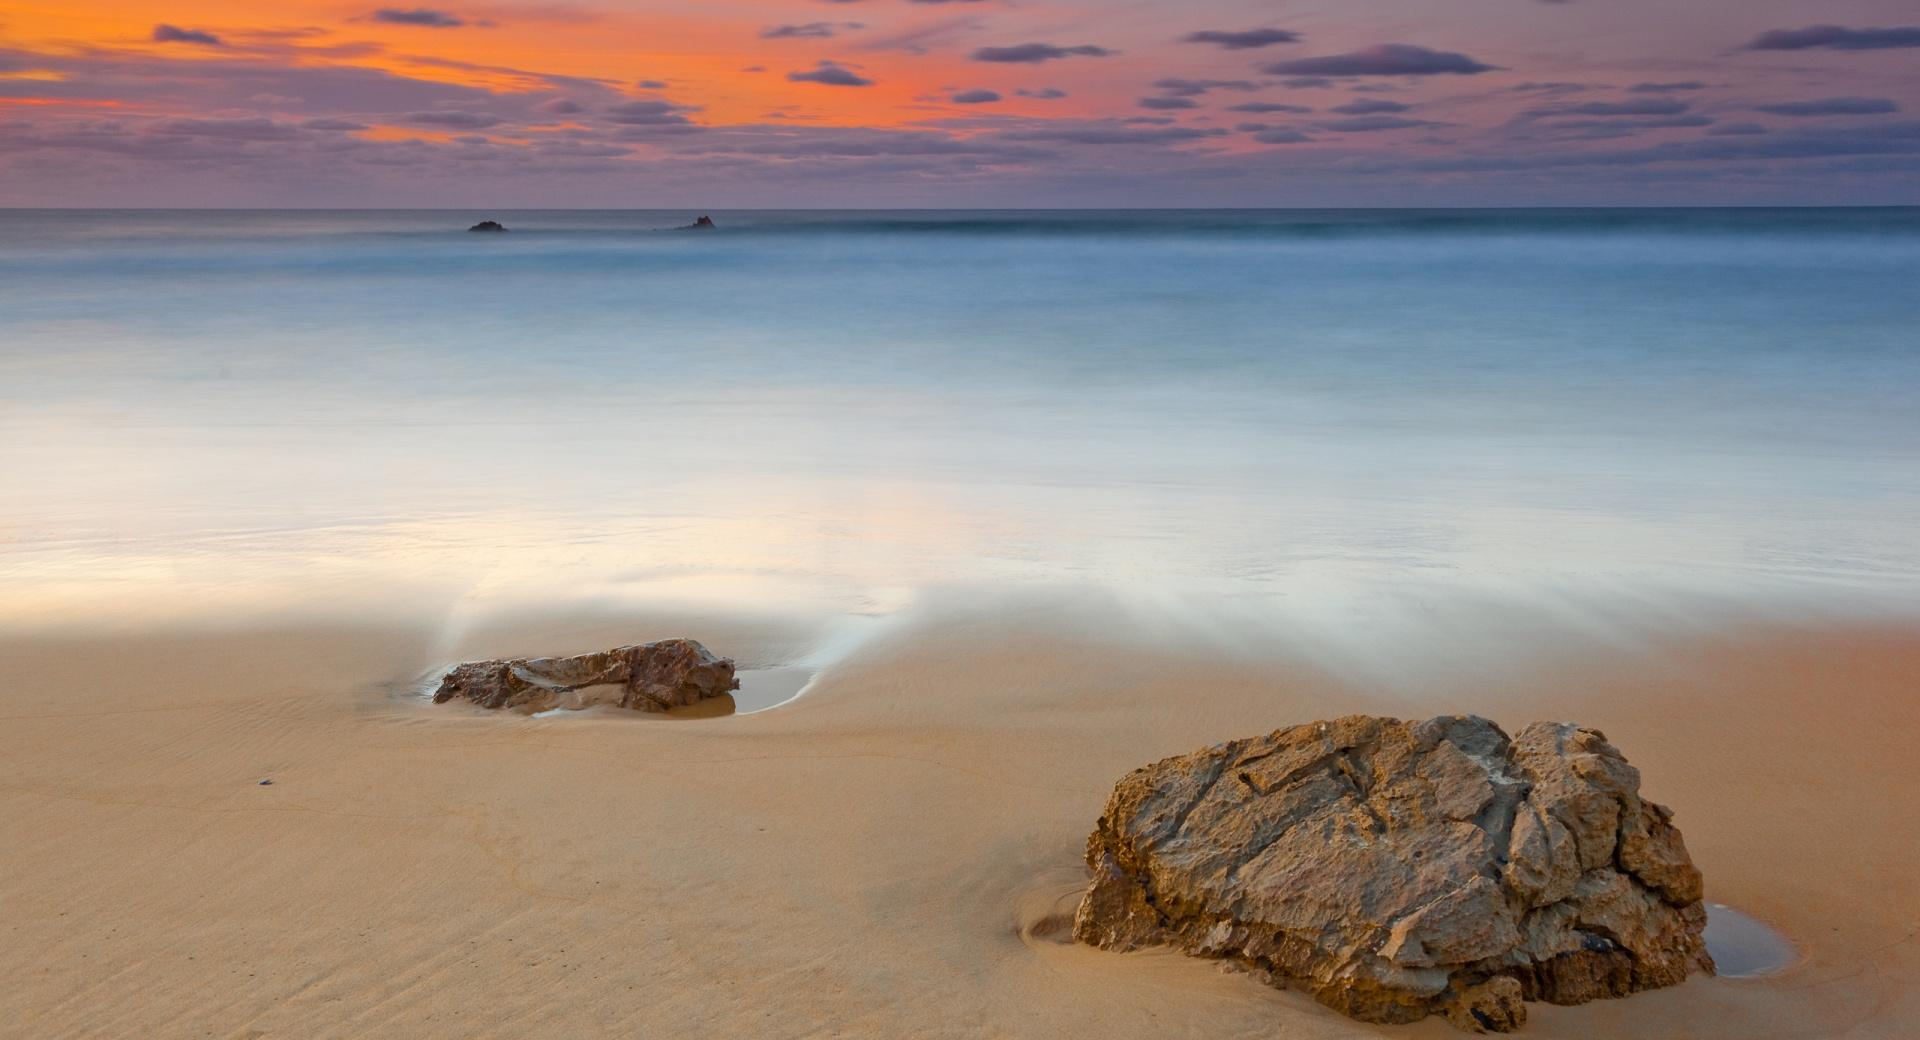 Ocean Shore, Evening wallpapers HD quality